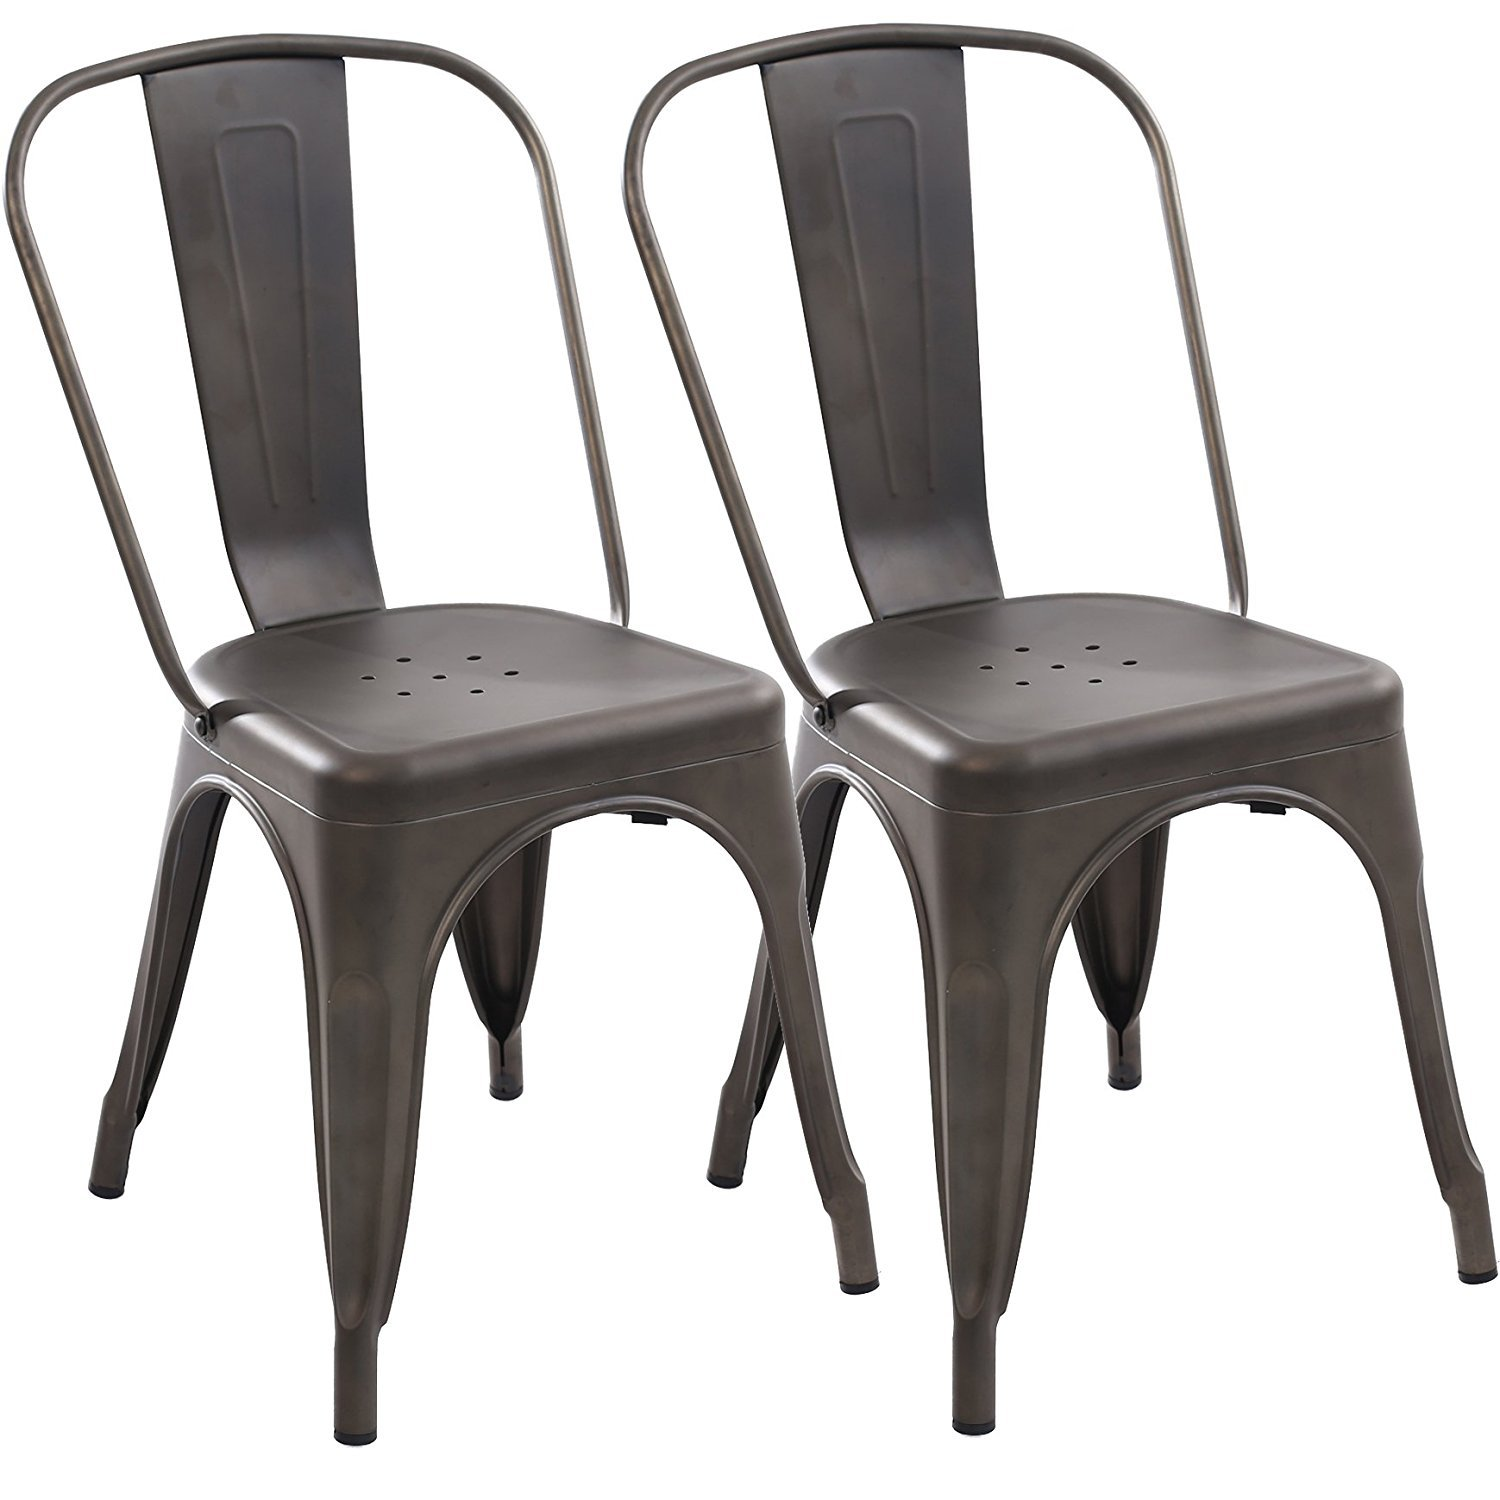 Poly and Bark Trattoria Side Chair in Bronze (Set of 2) by Poly and Bark